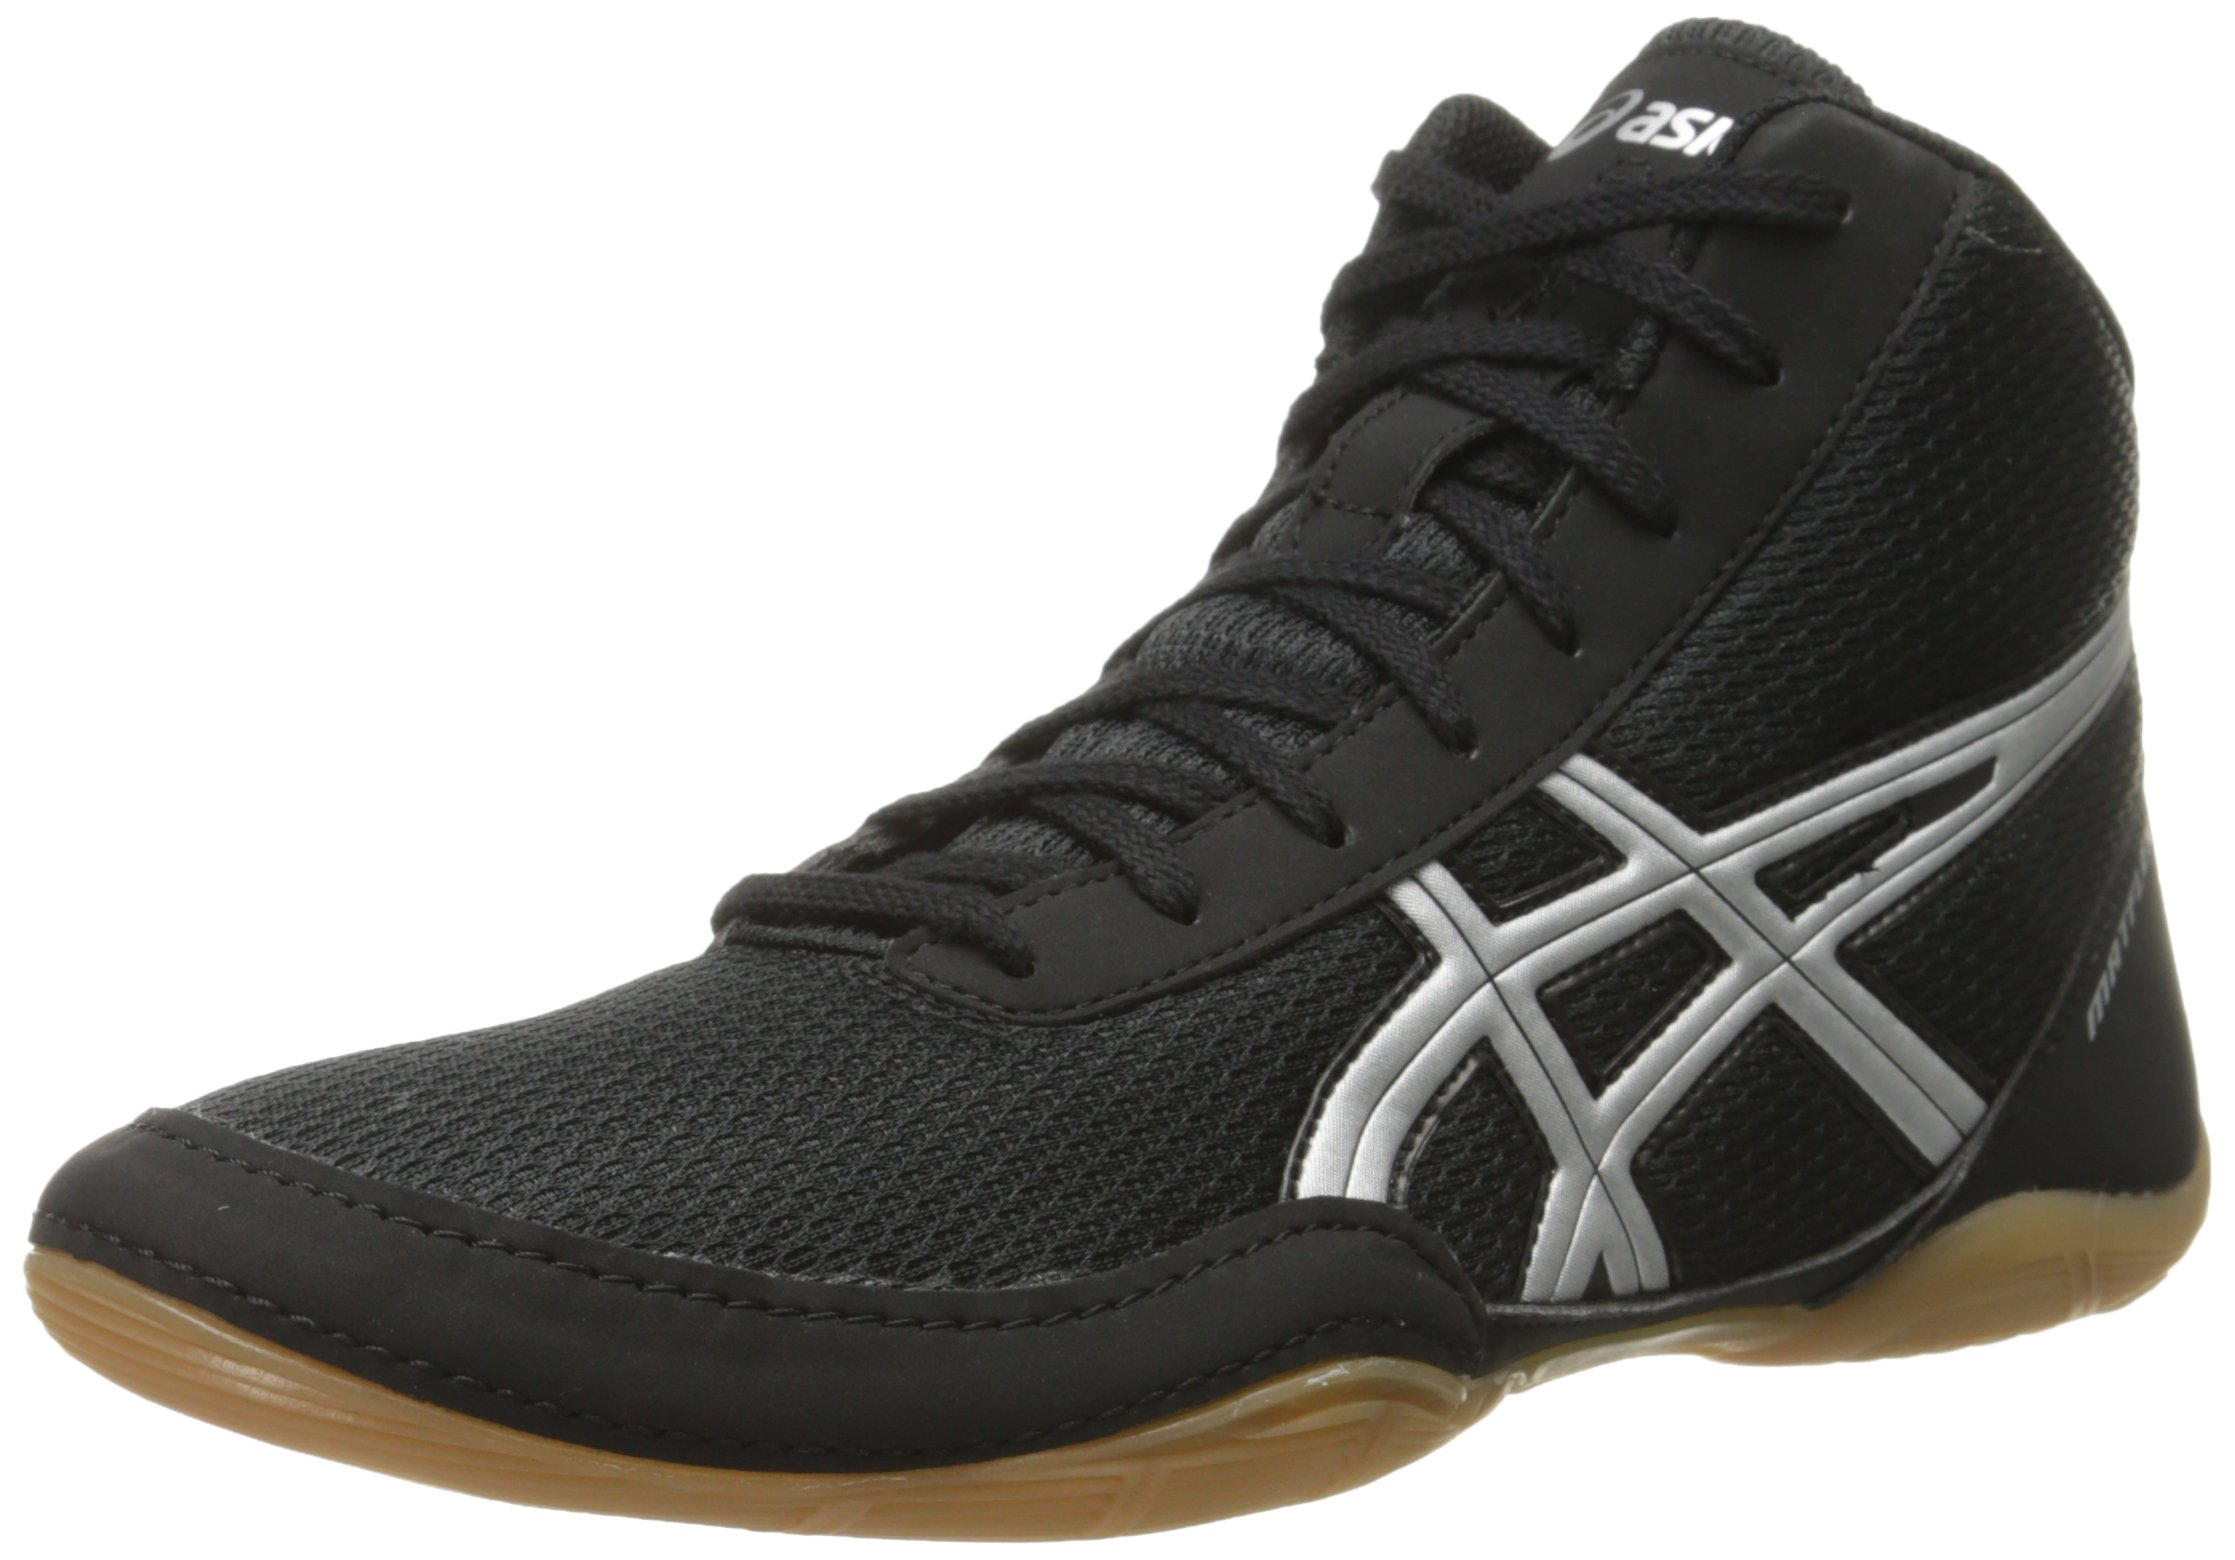 ASICS Men's Matflex 5-M, Black/Silver 6.5 M US